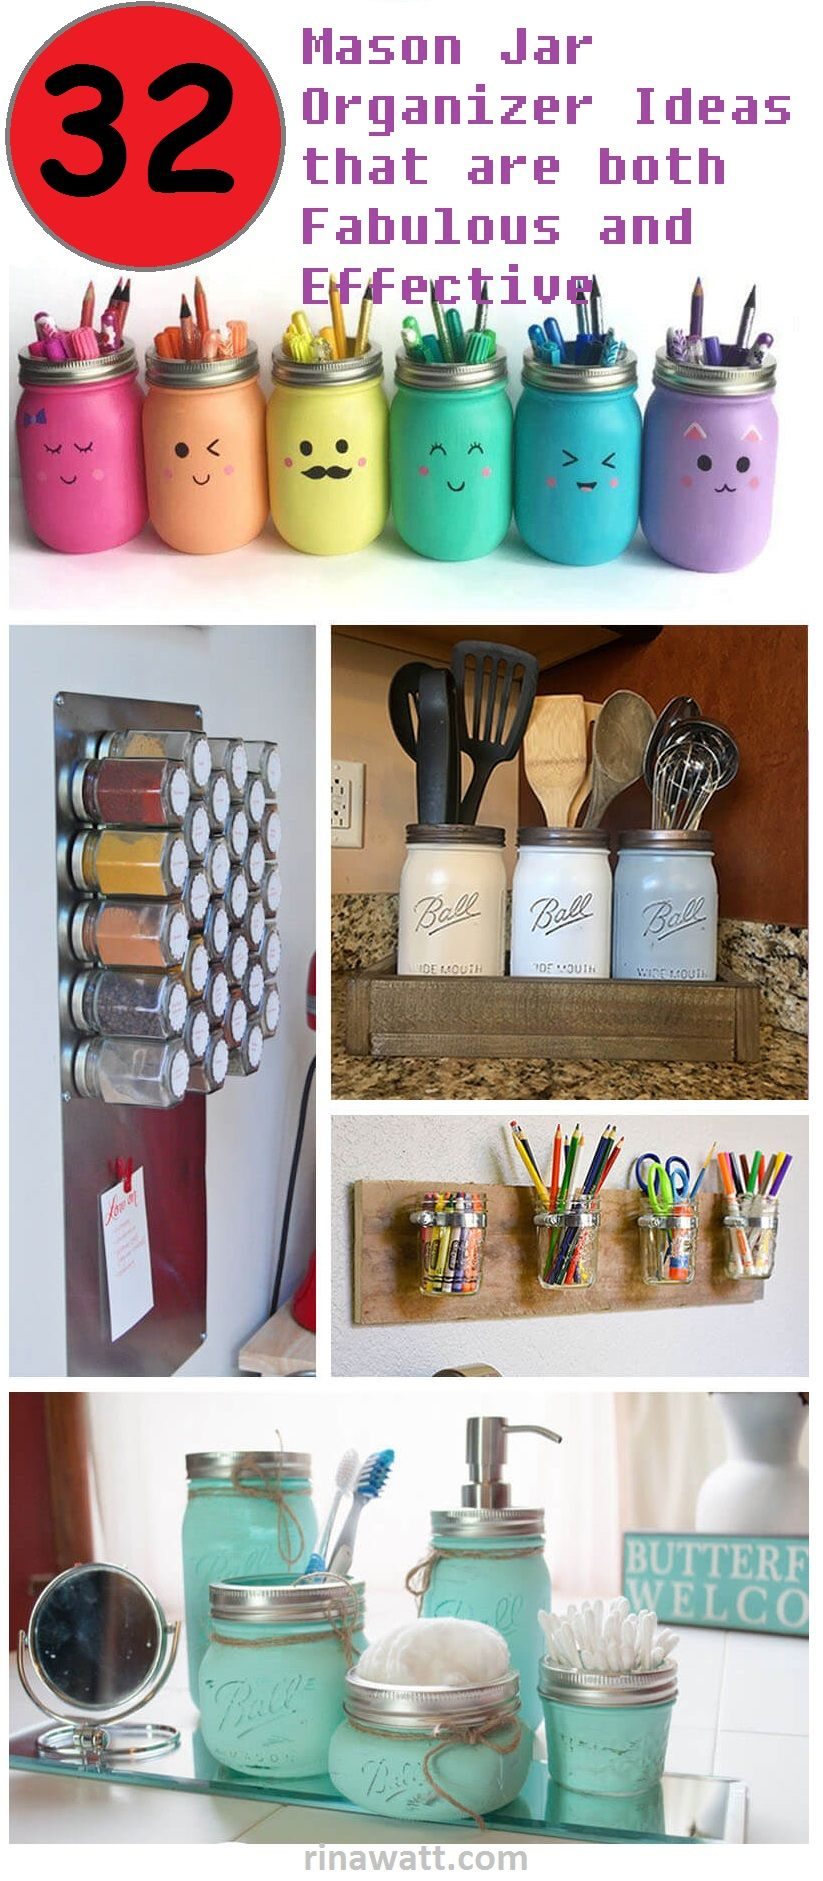 32 Creative Mason Jar Organizer Ideas To Save Space In A Charming Way Mason Jar Organization Mason Jar Diy Mason Jar Crafts Diy